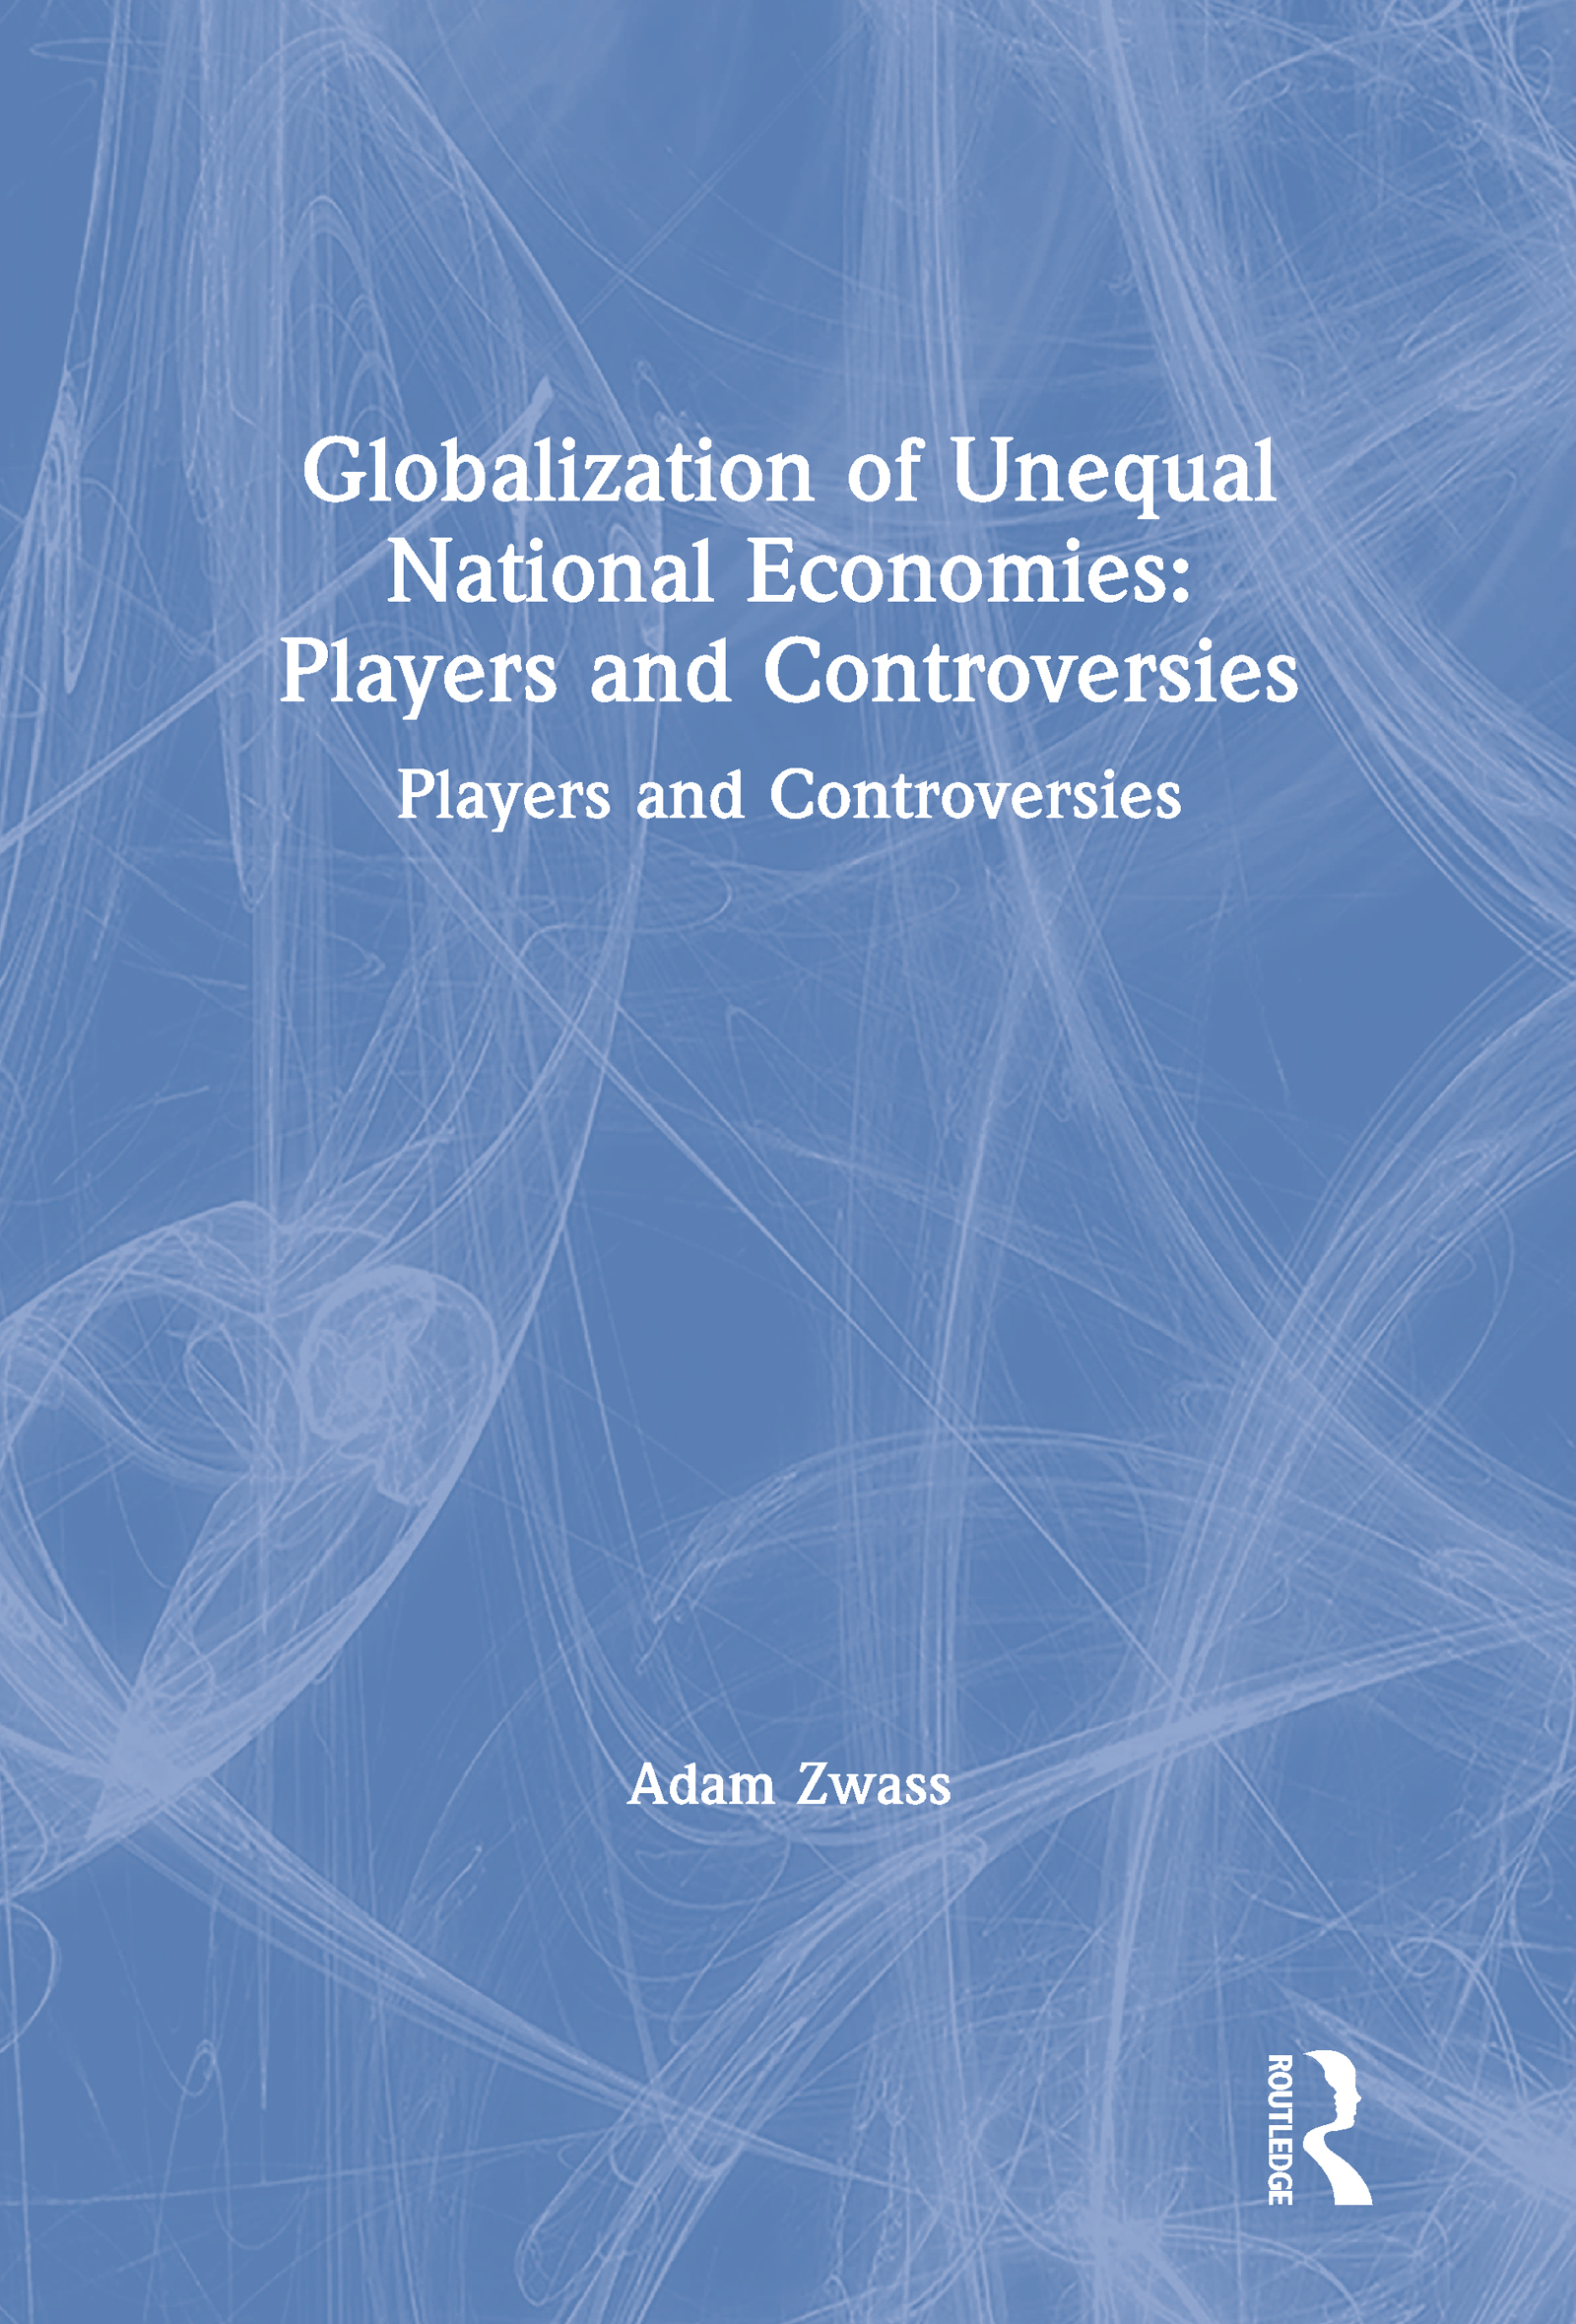 Globalization of Unequal National Economies: Players and Controversies